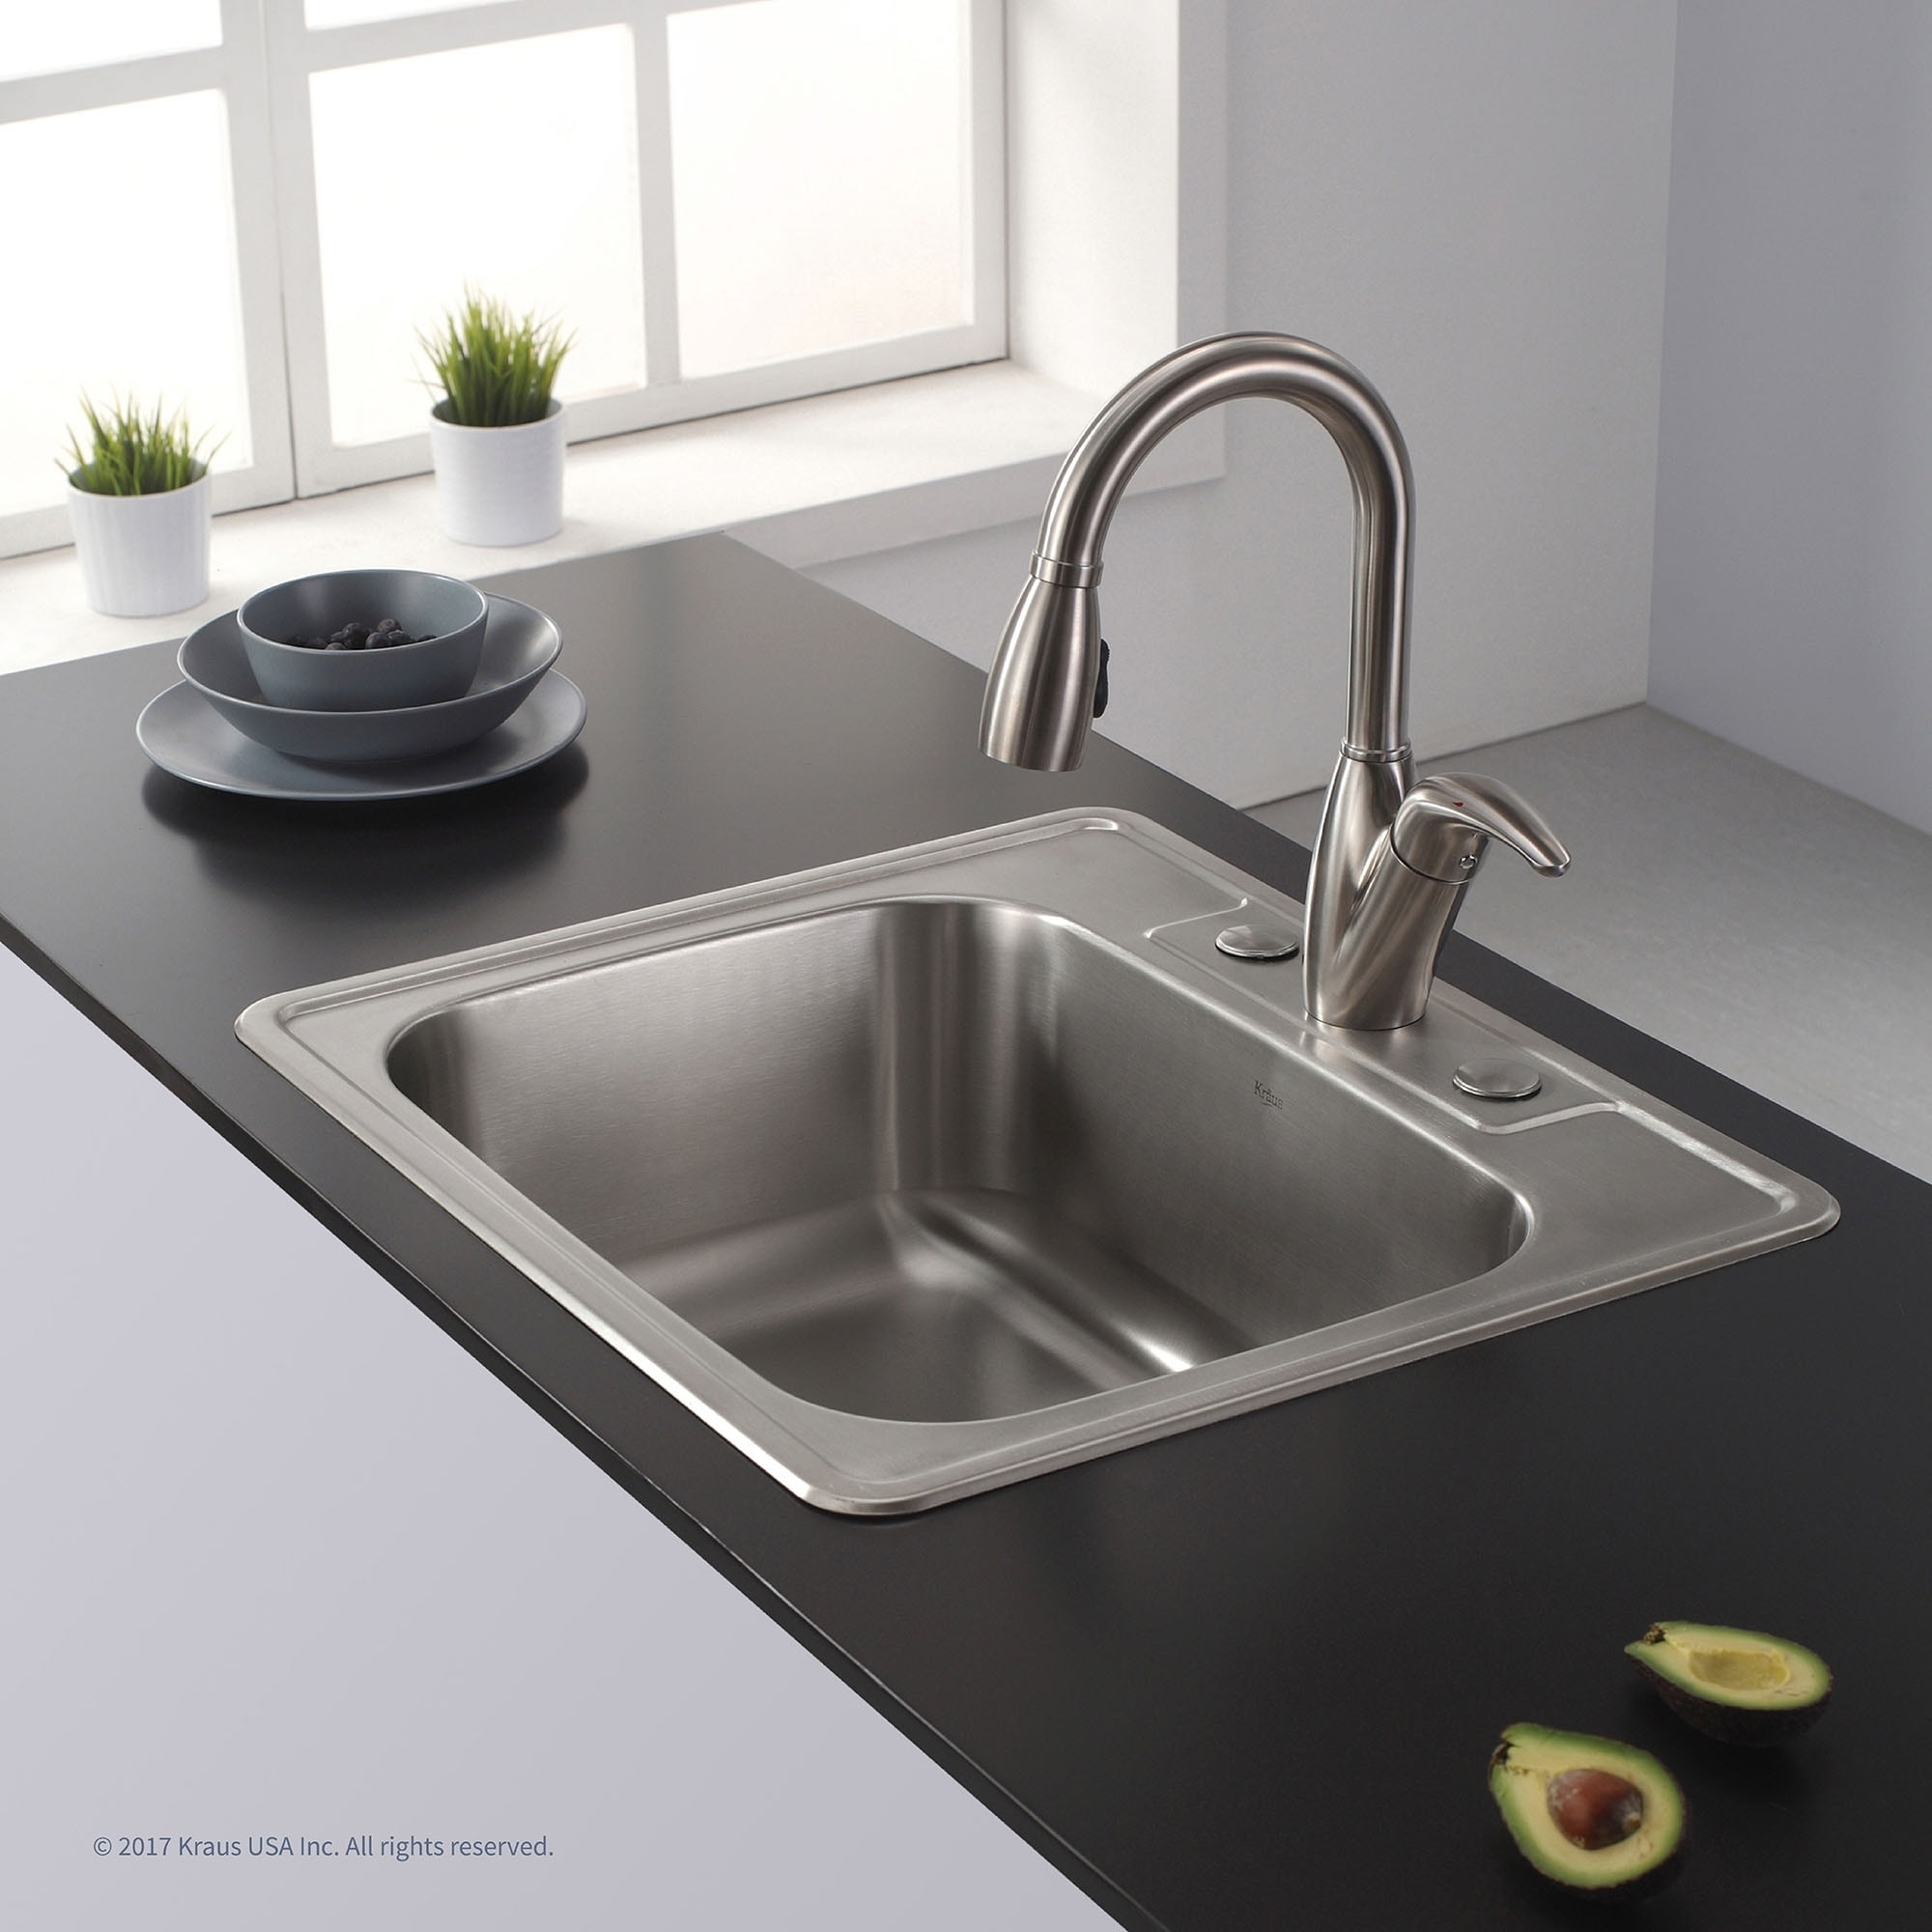 Shop kraus ktm25 drop in 25 inch 18 gauge single bowl satin stainless steel kitchen sink with noisedefend soundproofing free shipping today